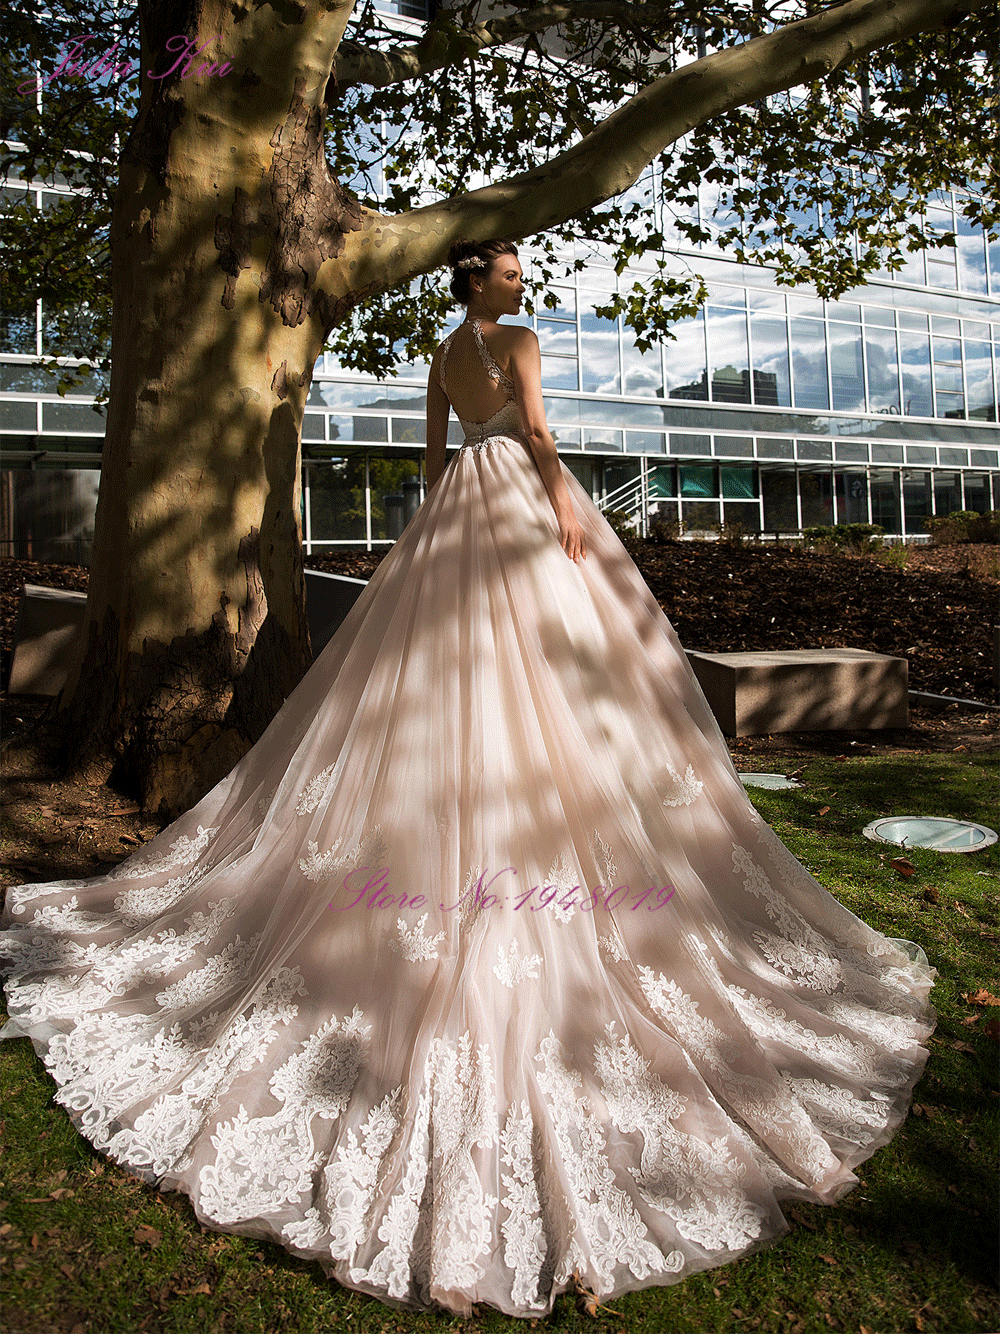 Julia Kui Vintage Ball Gown Wedding Dress 2020 Customized Sexy Halter Backless Court Train Princess Wedding Gowns - 5